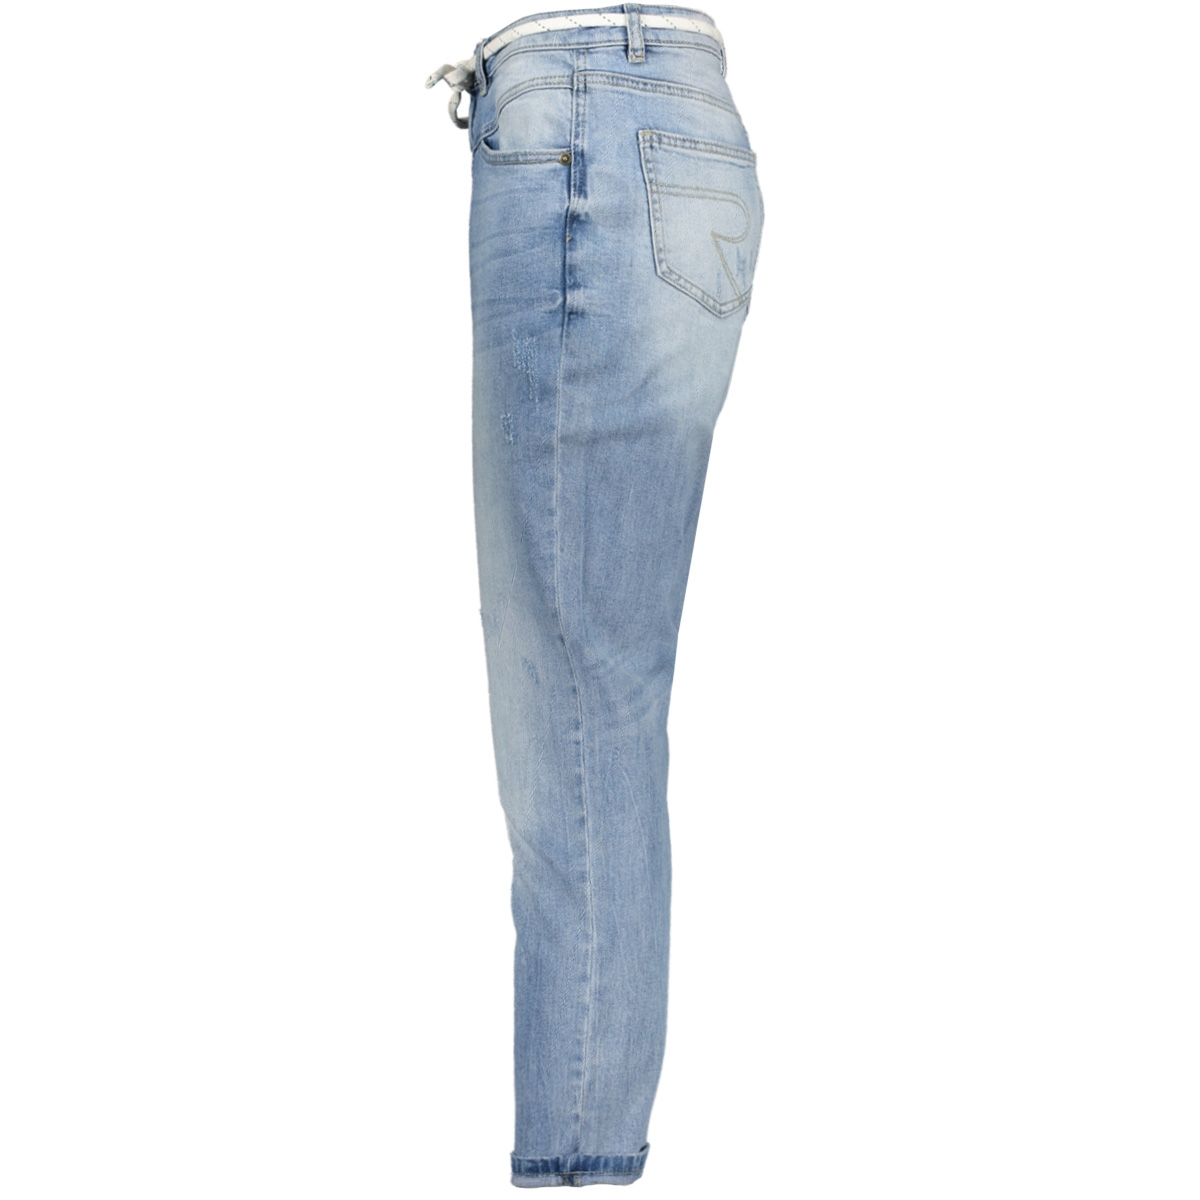 jeans with cord 01011 geisha jeans blue denim